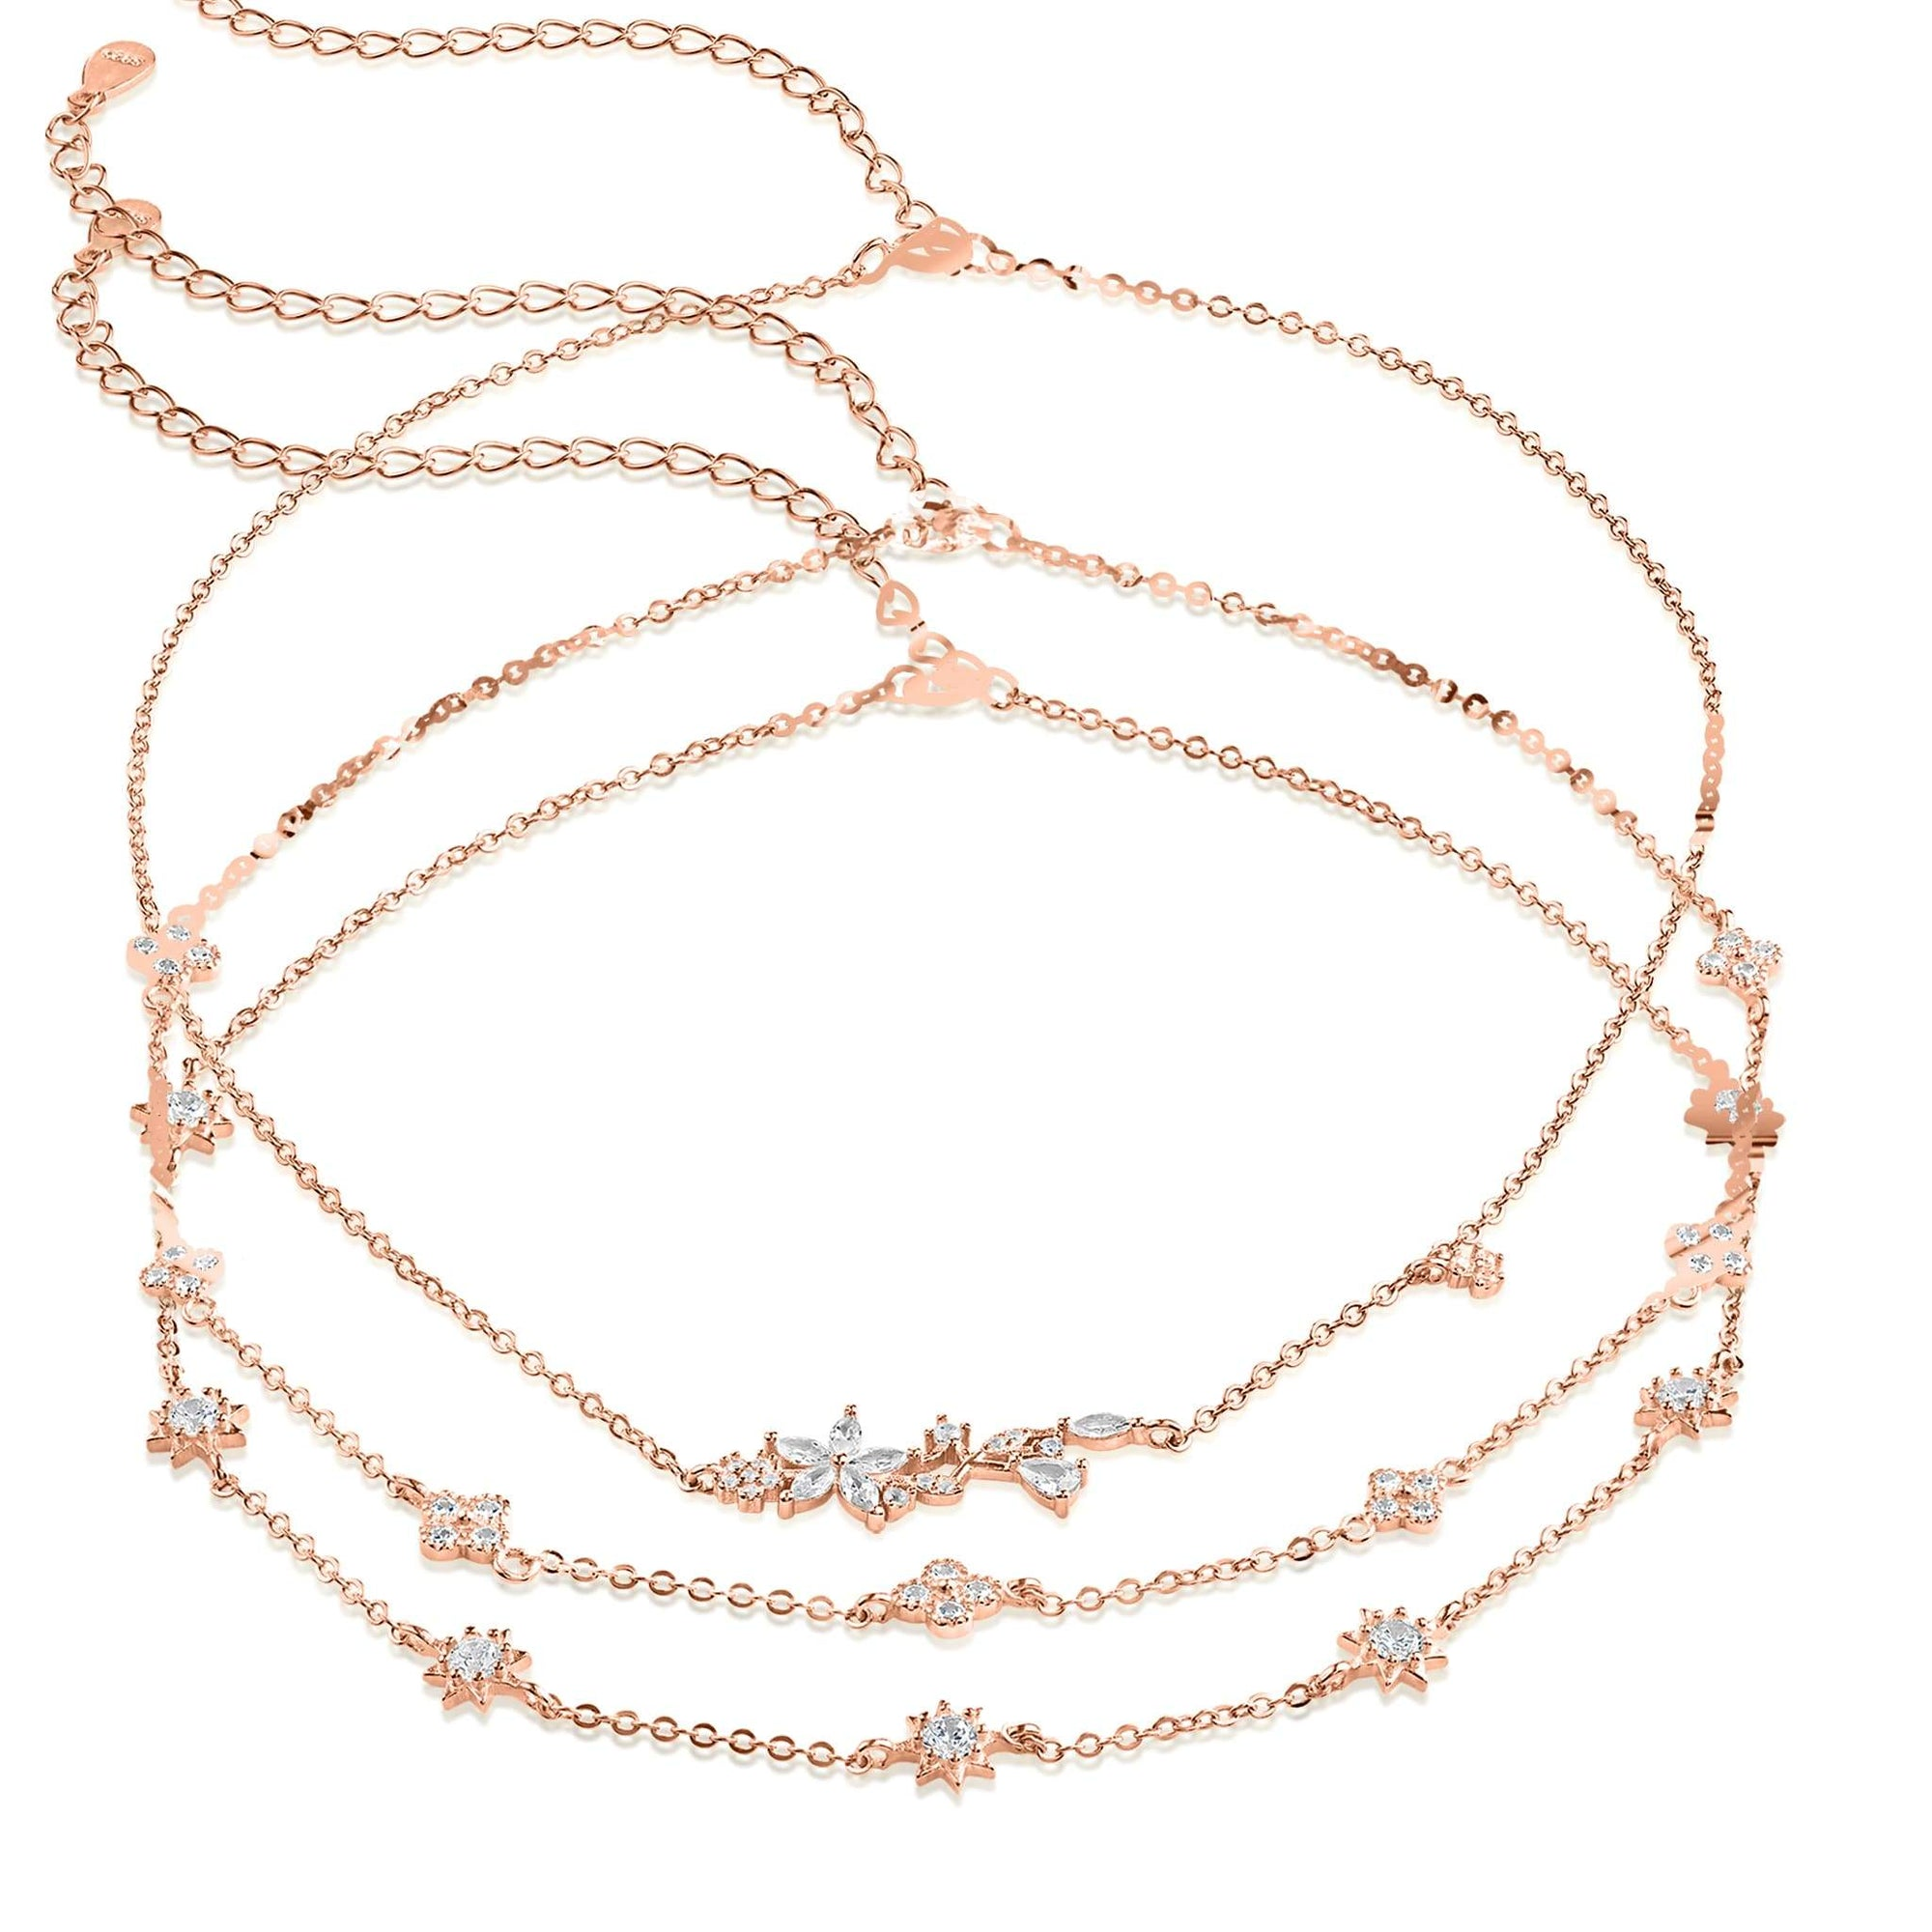 Clementine 3 in 1 Choker Necklace - Trio - 18K Rose Gold Vermeil